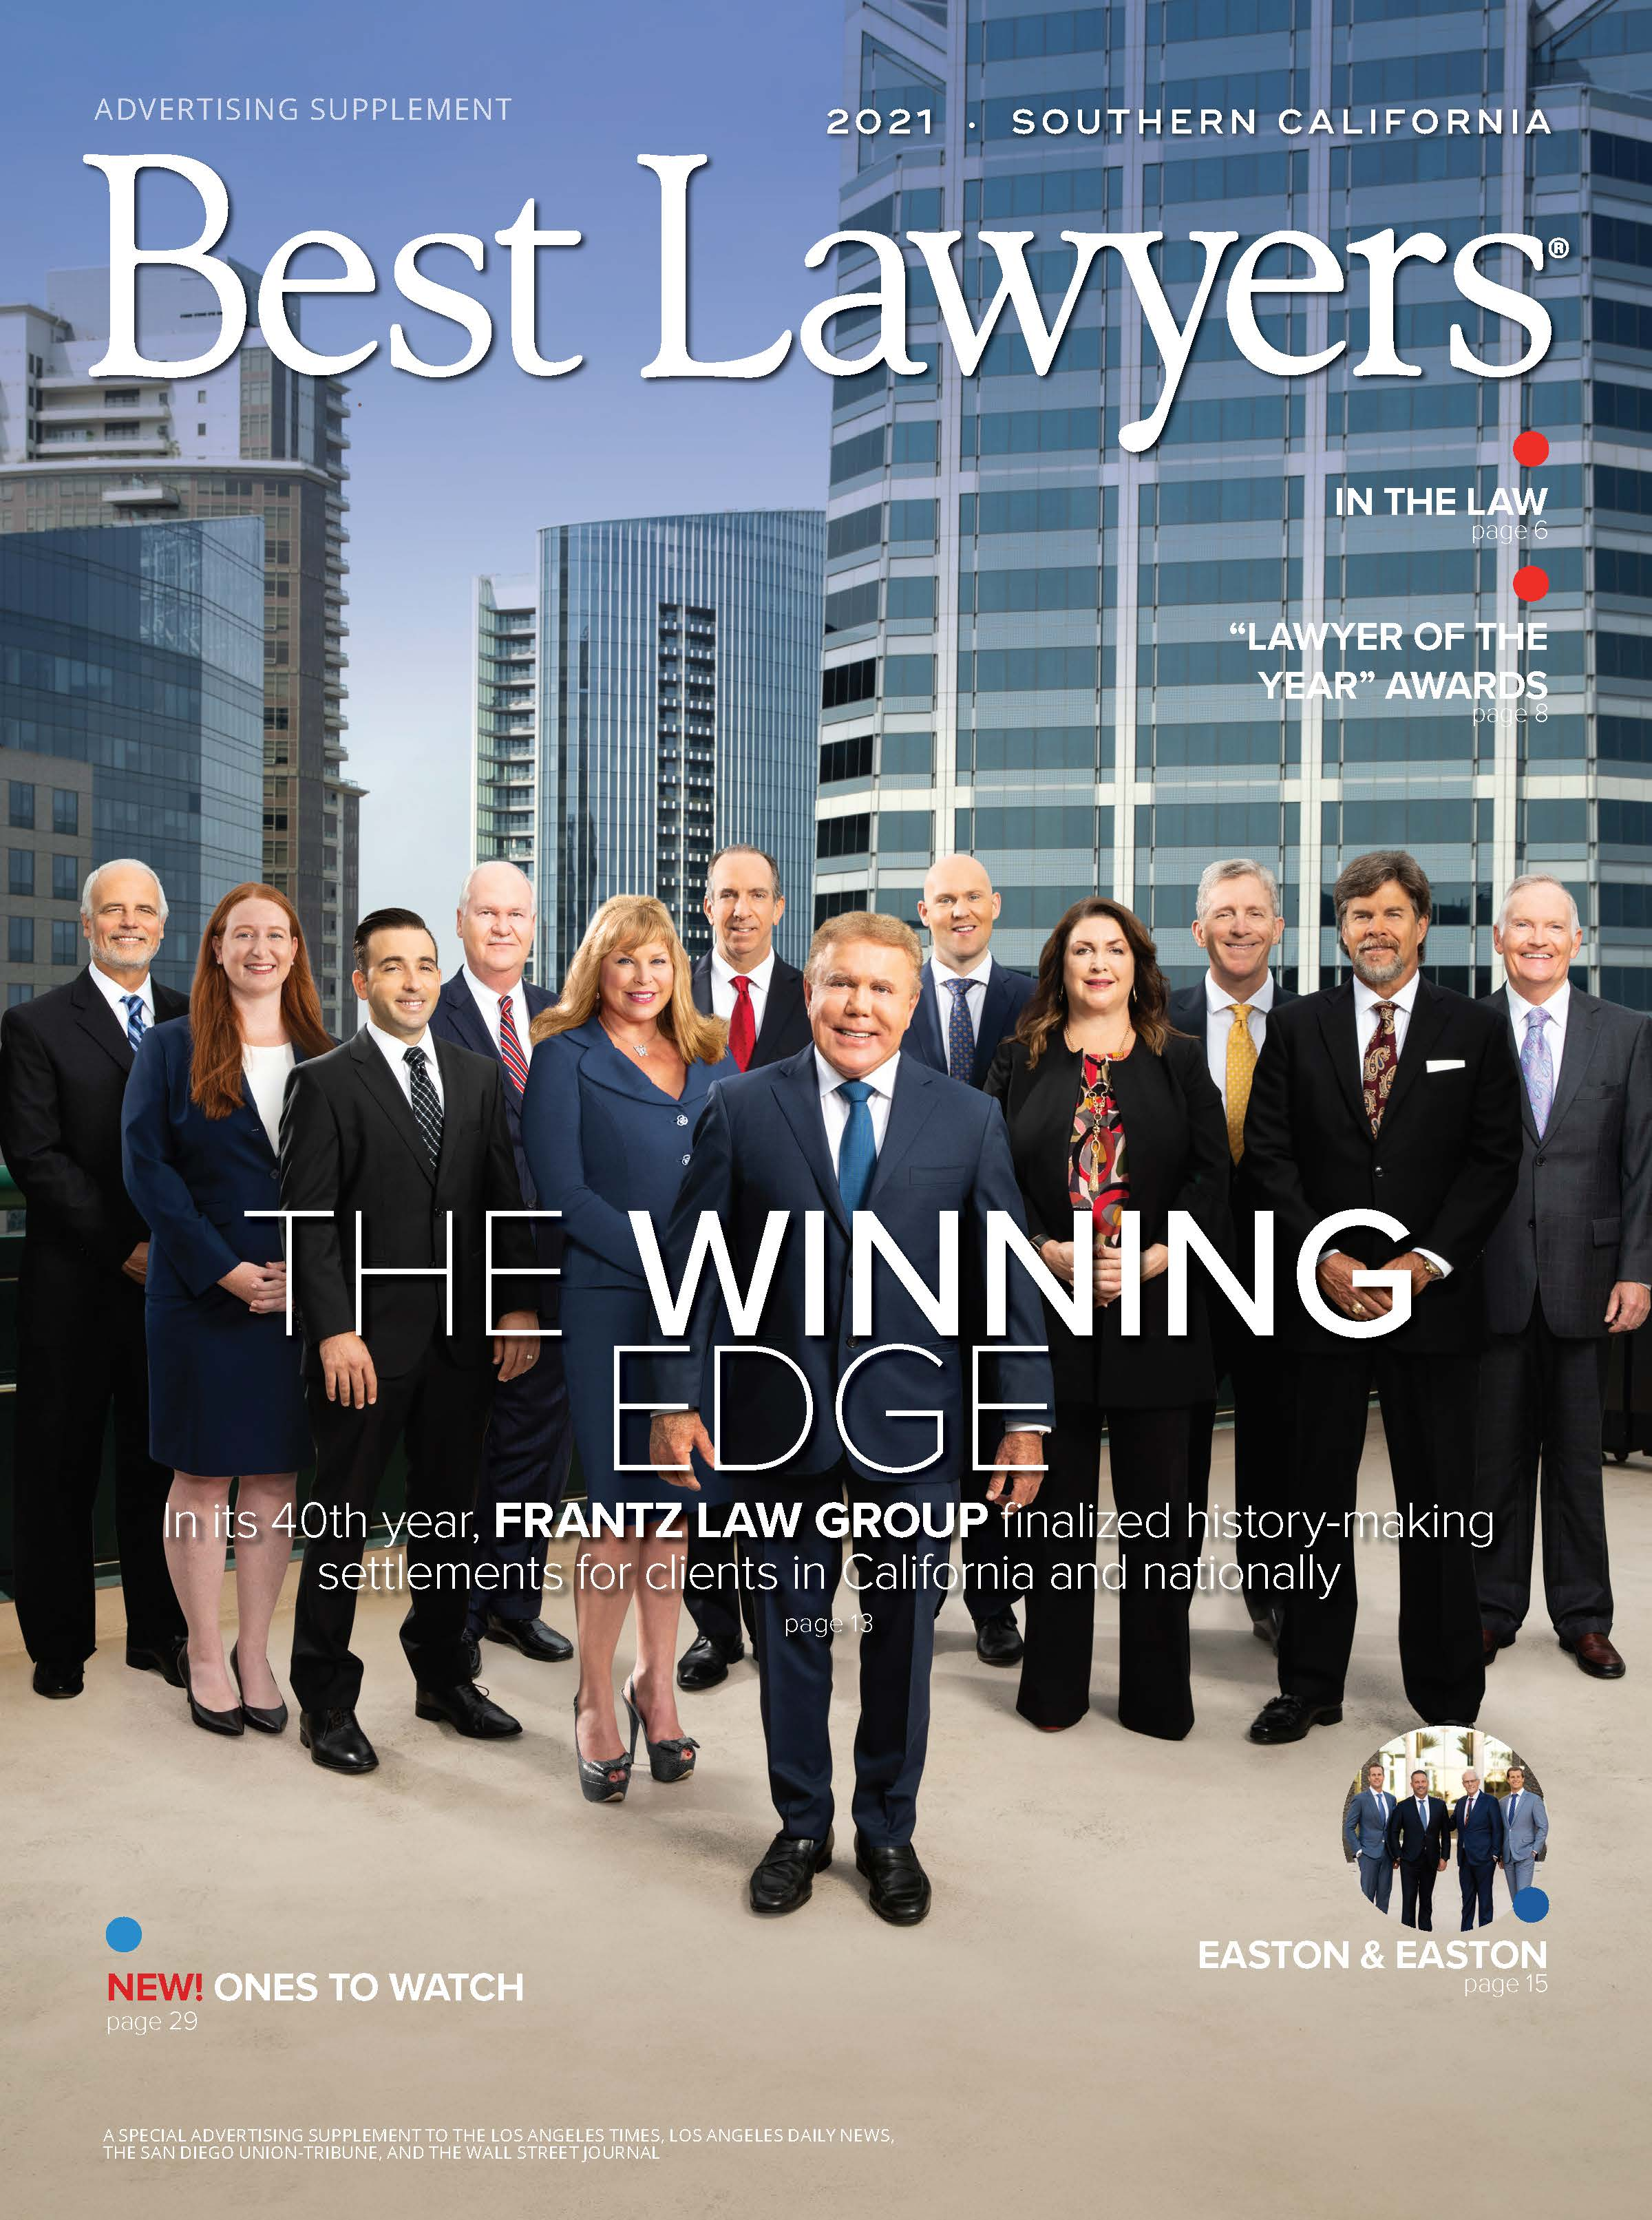 2021 Southern California's Best Lawyers cover